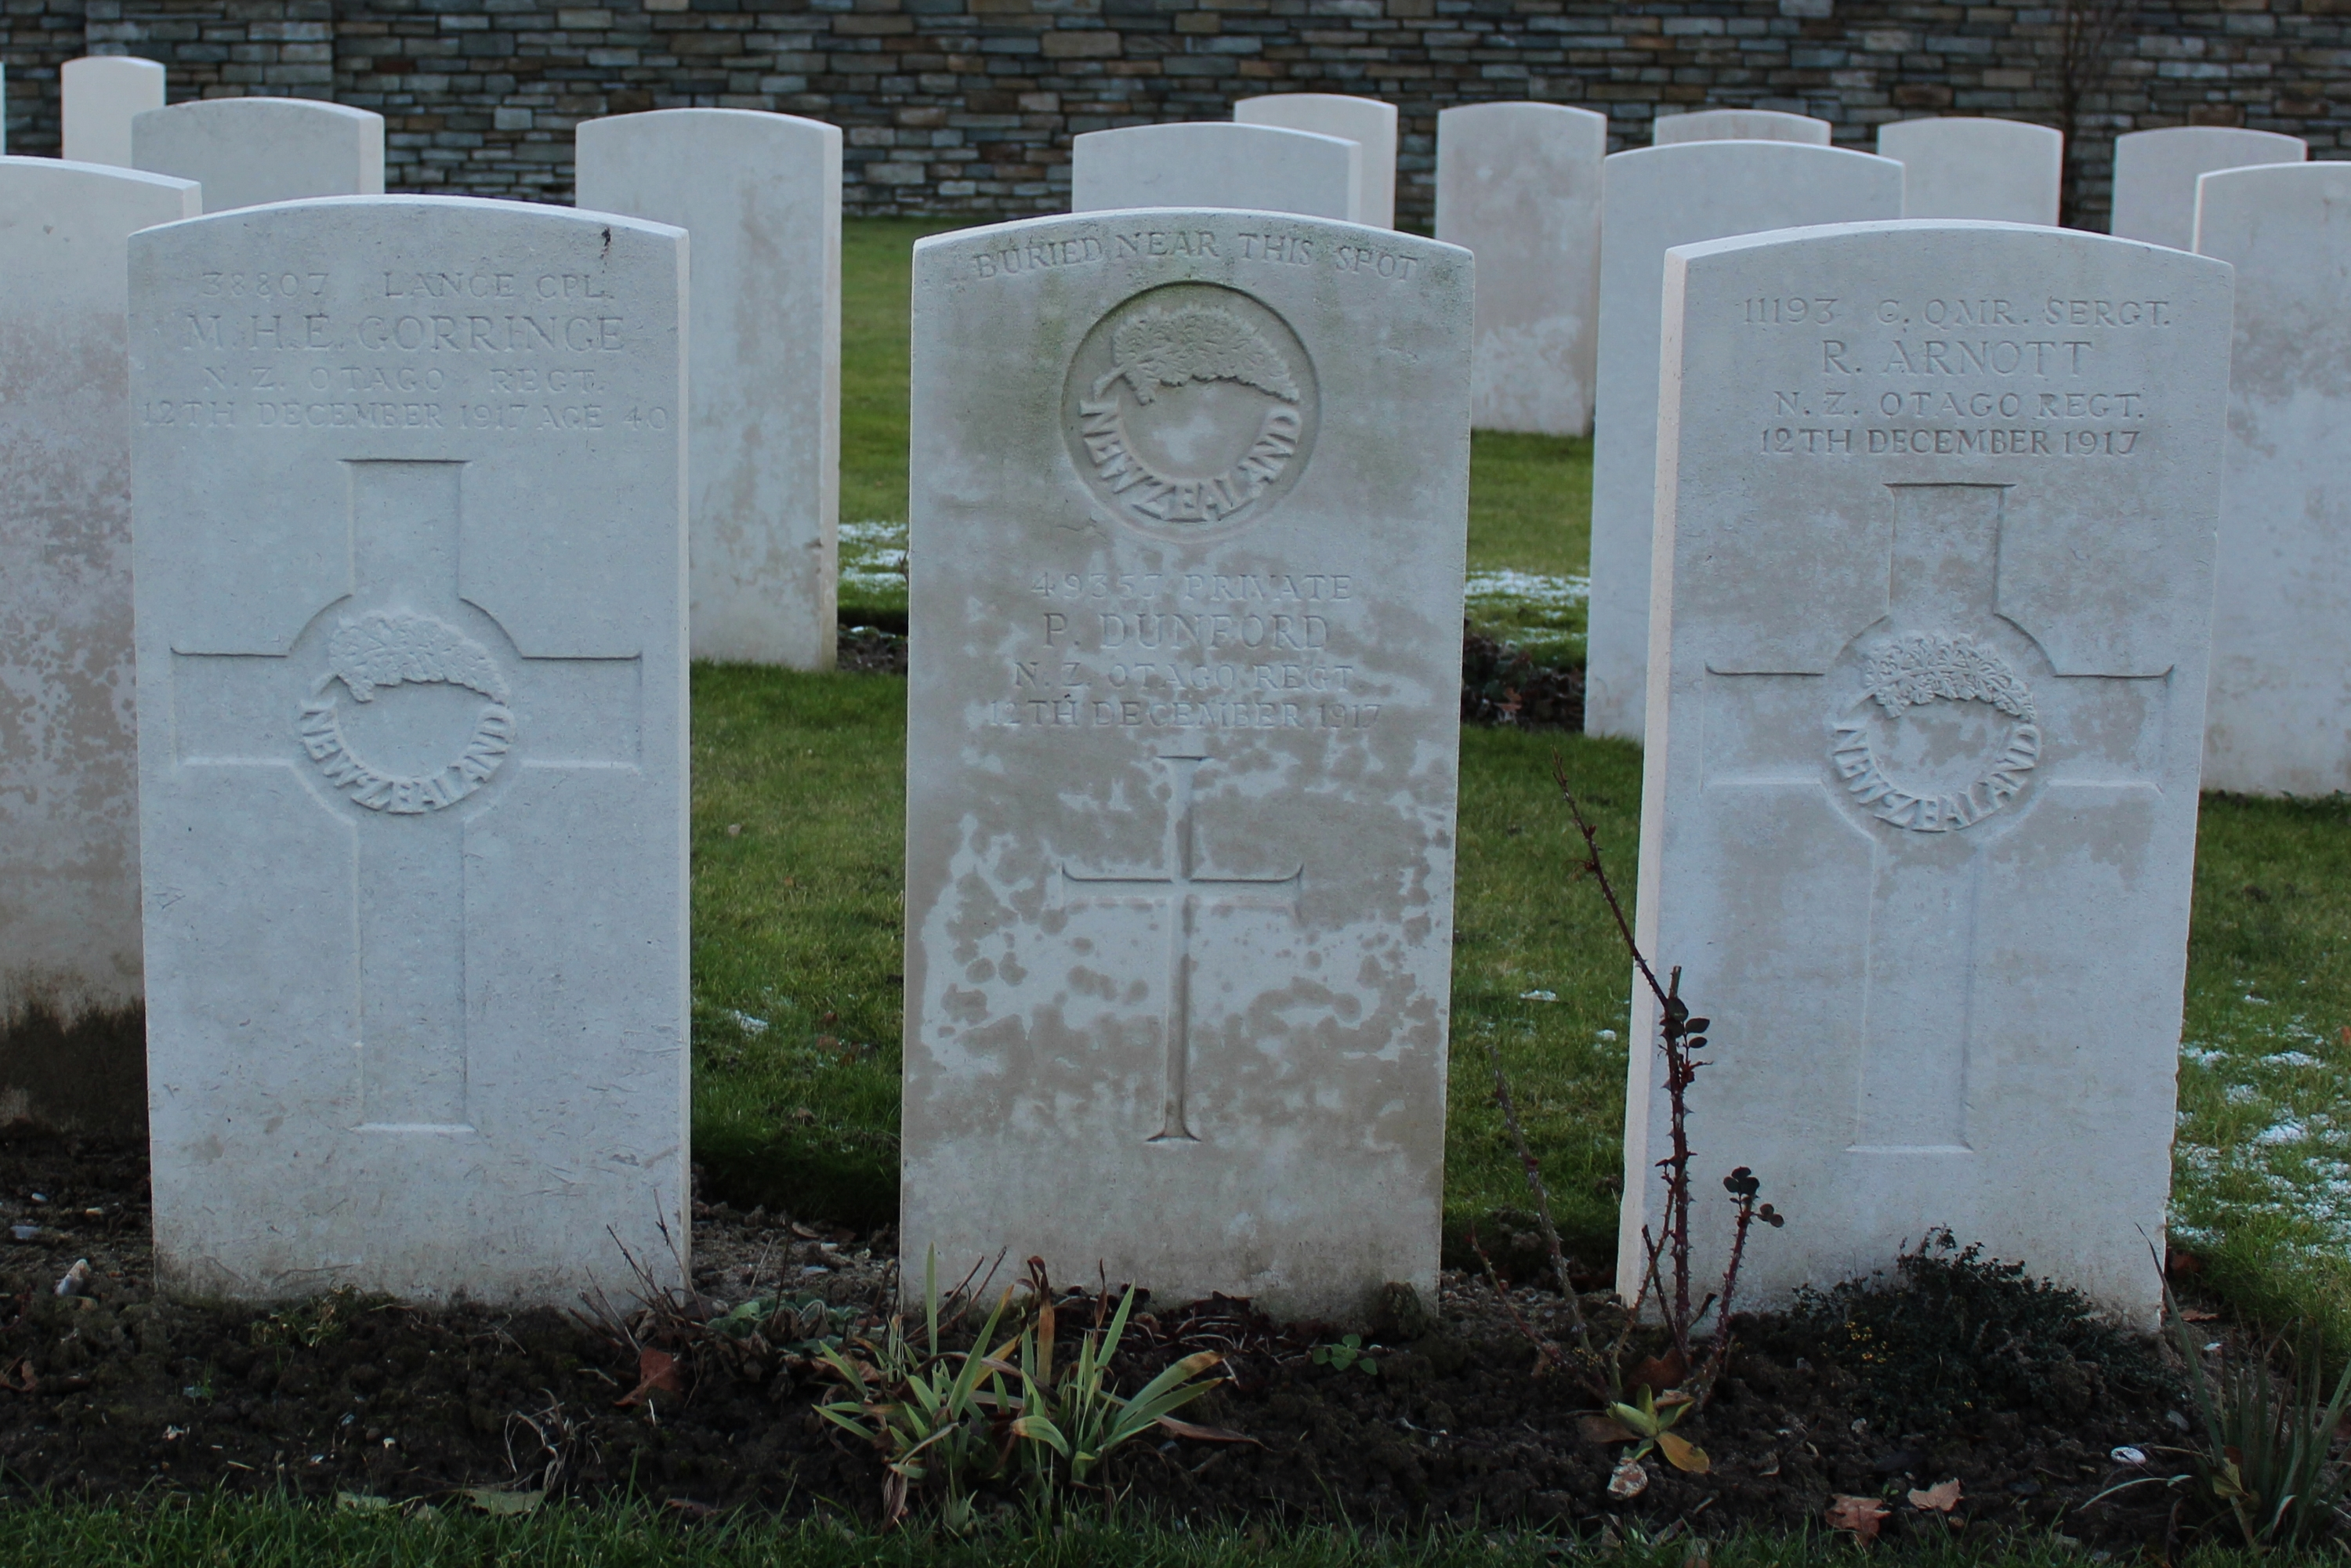 Polygon Wood Cemetery | With the British Army in Flanders & France